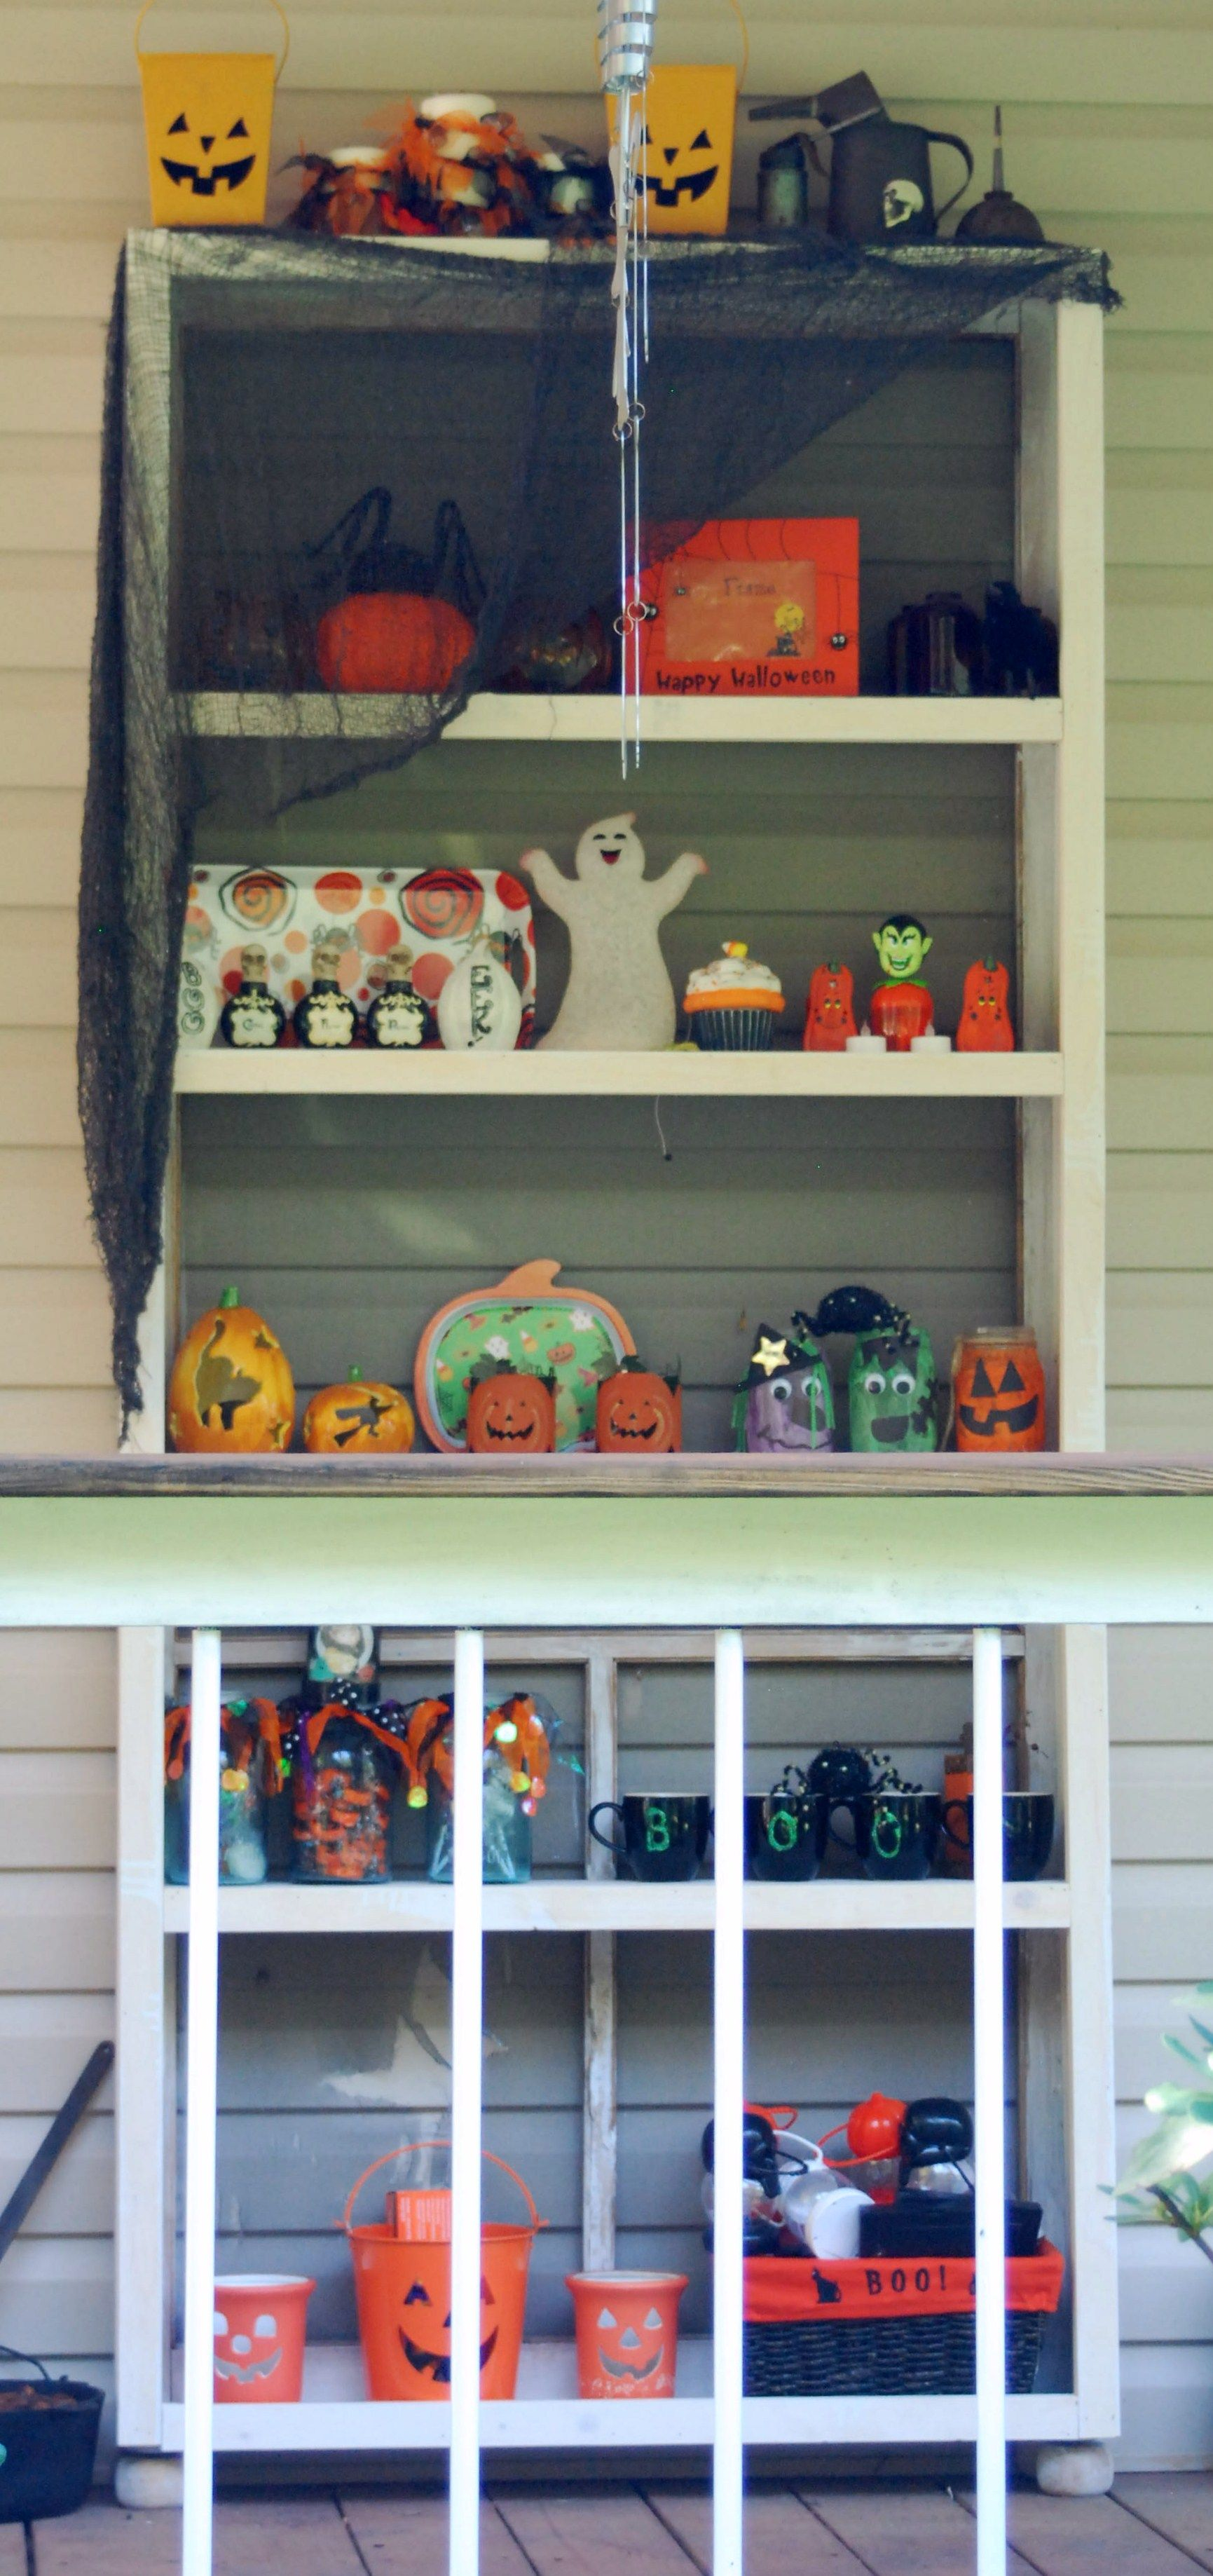 Old screen door made into shelf to display decorations on porch.